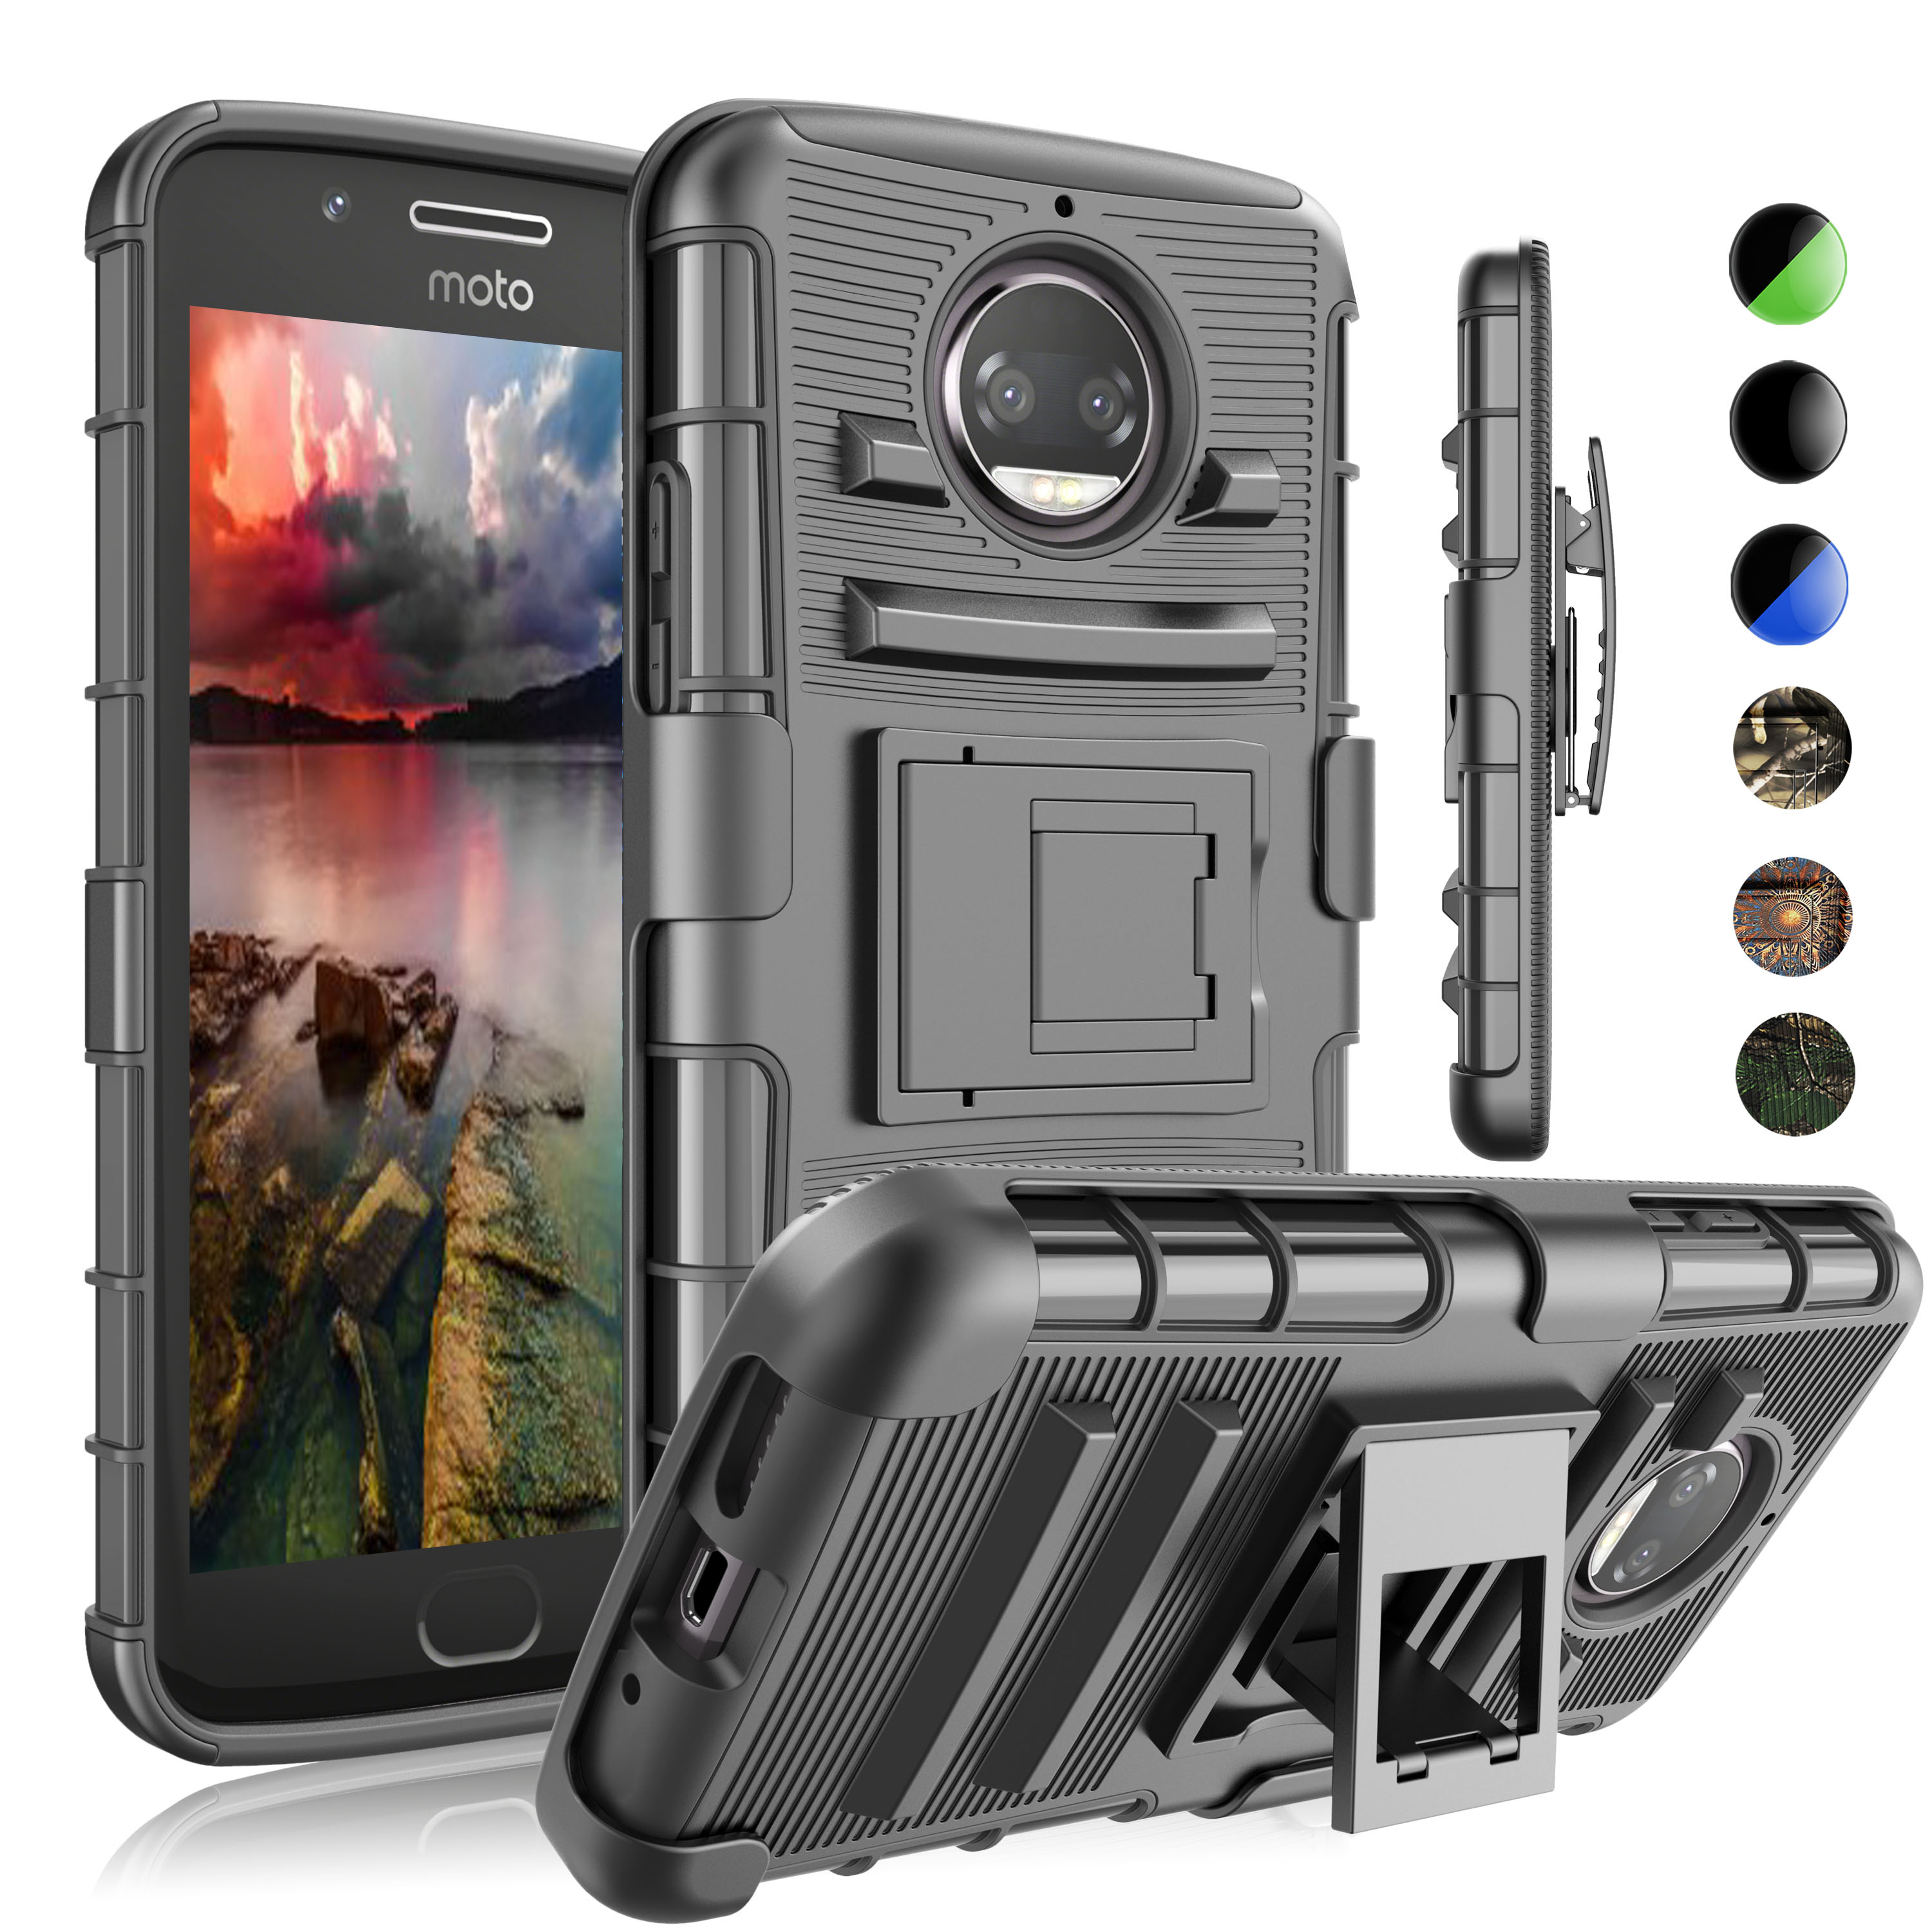 quality design 21e87 e0b4d Moto G5S Plus Case, Moto G5S Plus Hoster Belt, Moto G5S Plus Clip, Njjex  Rugged-Duty Holster & Built-In Kickstand Feature Combo Case For Motorola  Moto ...